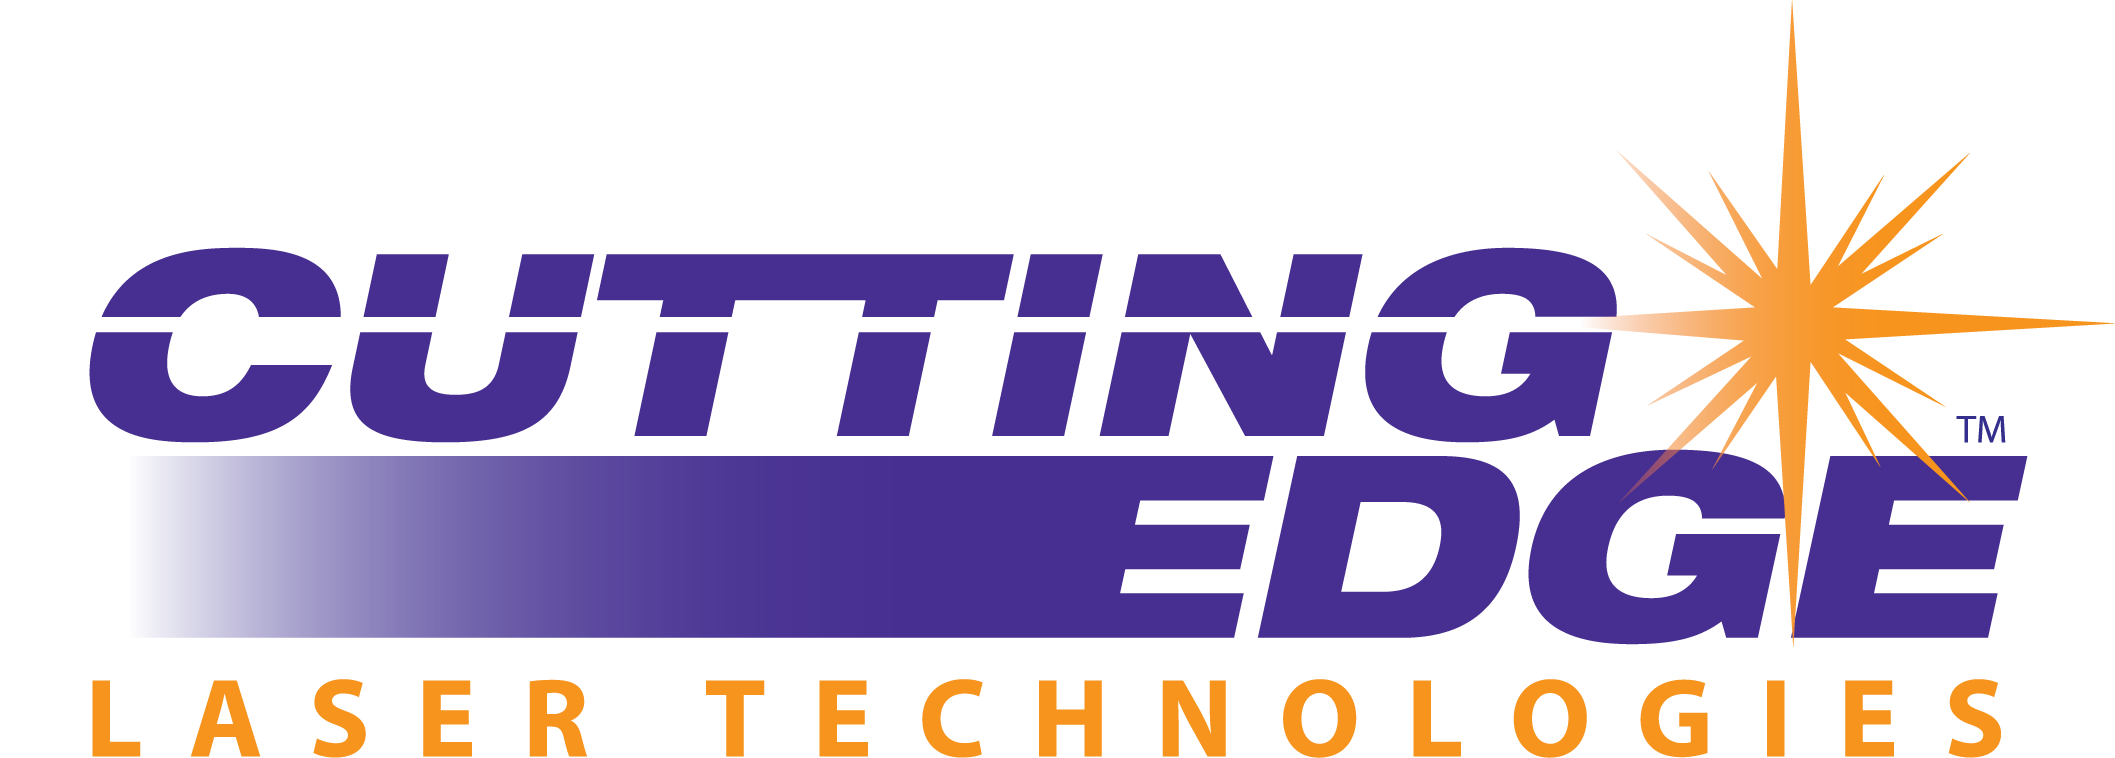 2016_CE_Logo_Vector_90_100_0_0.png